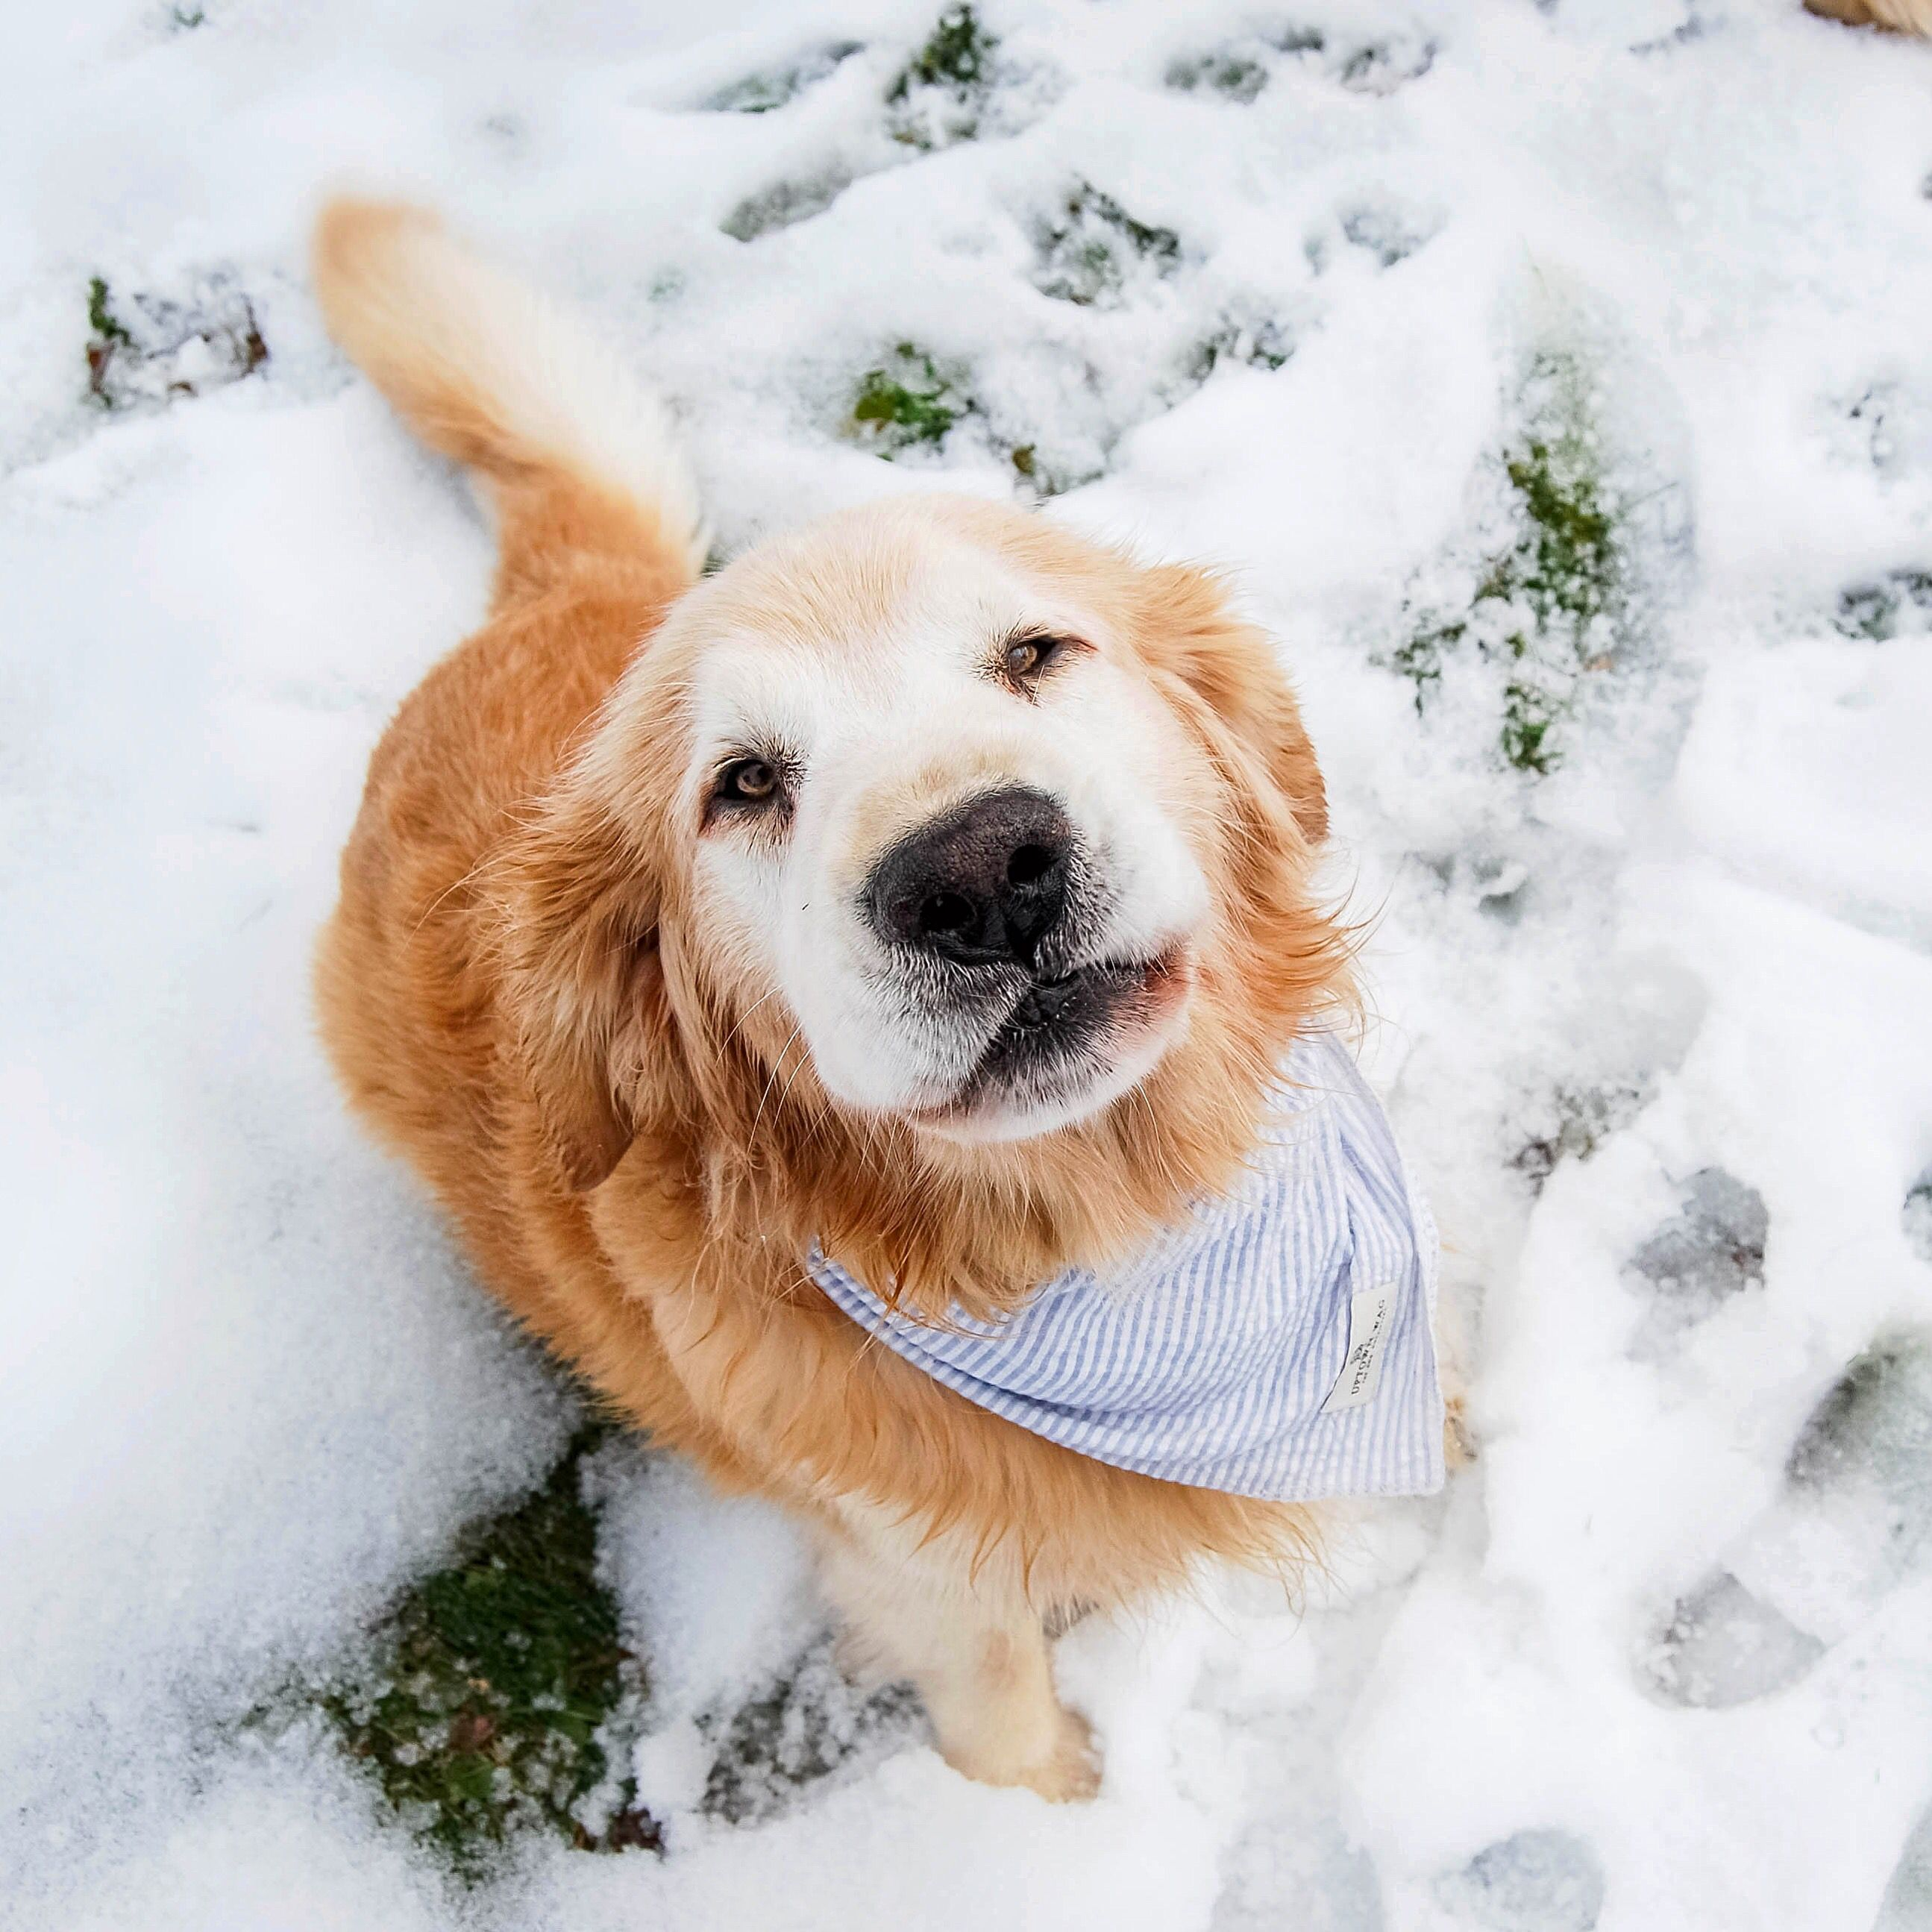 Handsome Golden Retriever Snow Dogs Animals Beautiful Dog Lady